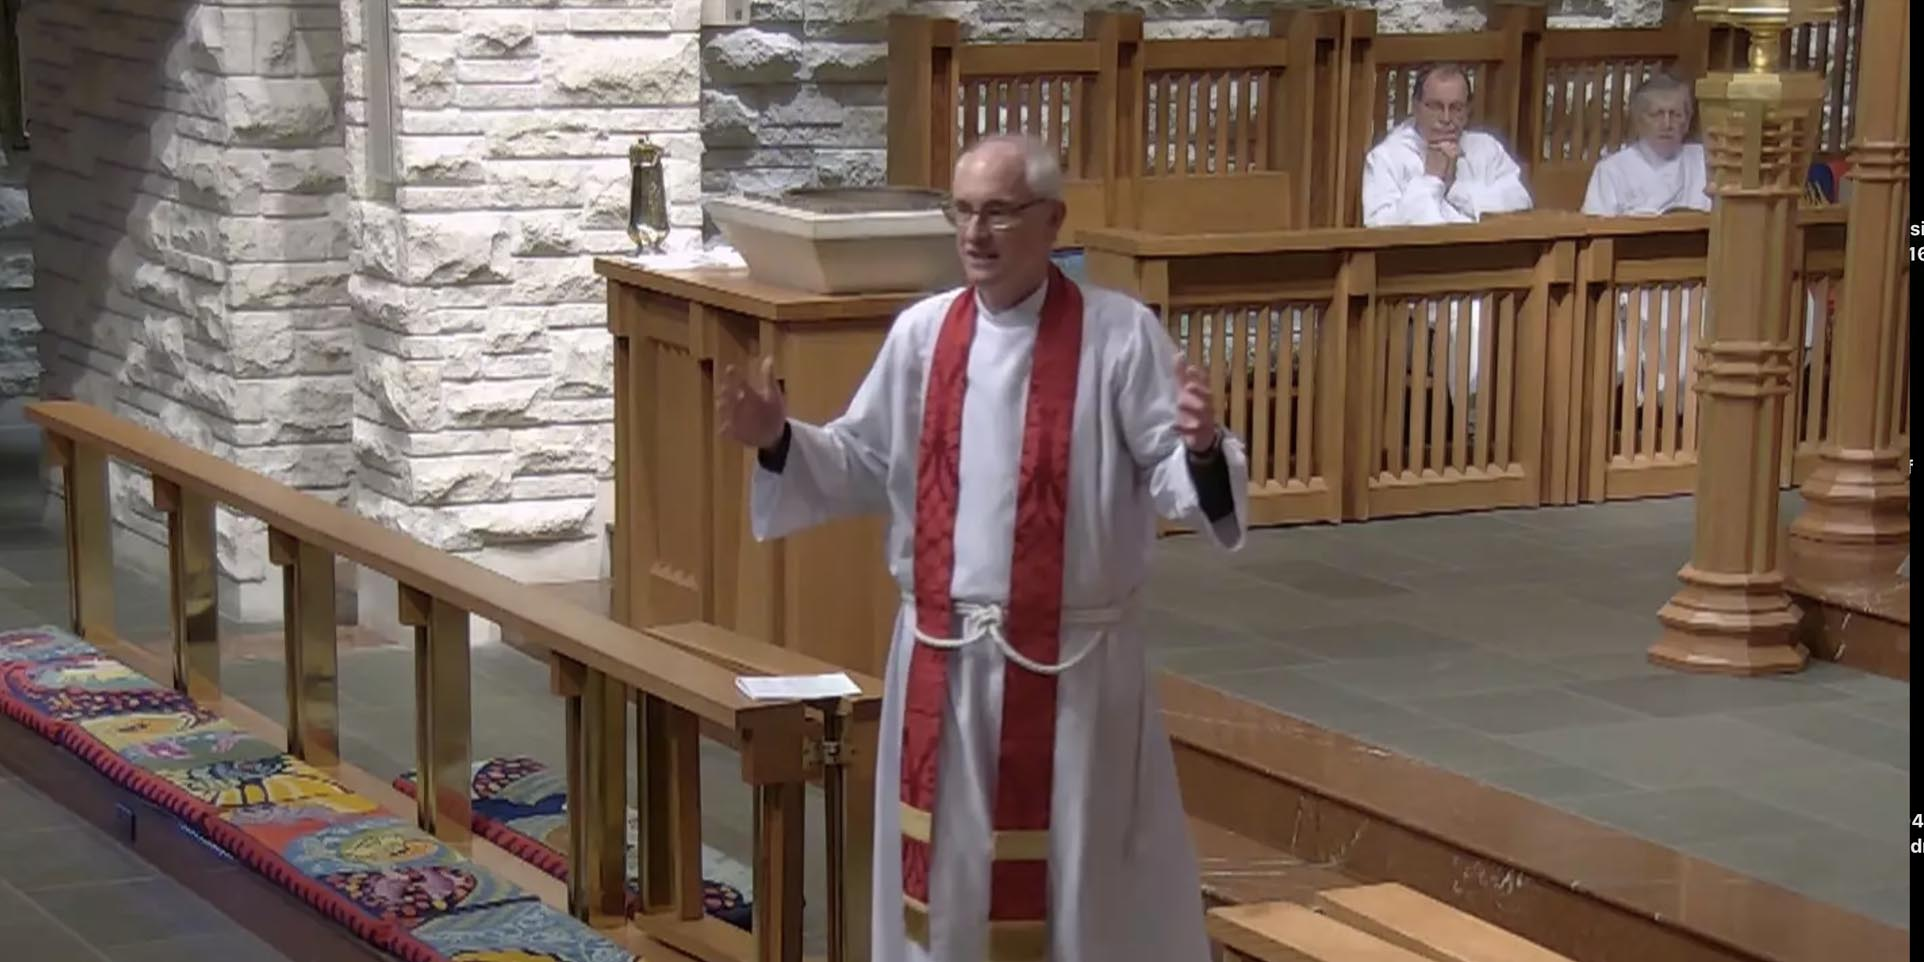 You Can't, God Can - Sermon by the Rev. Dr. Clay Lein